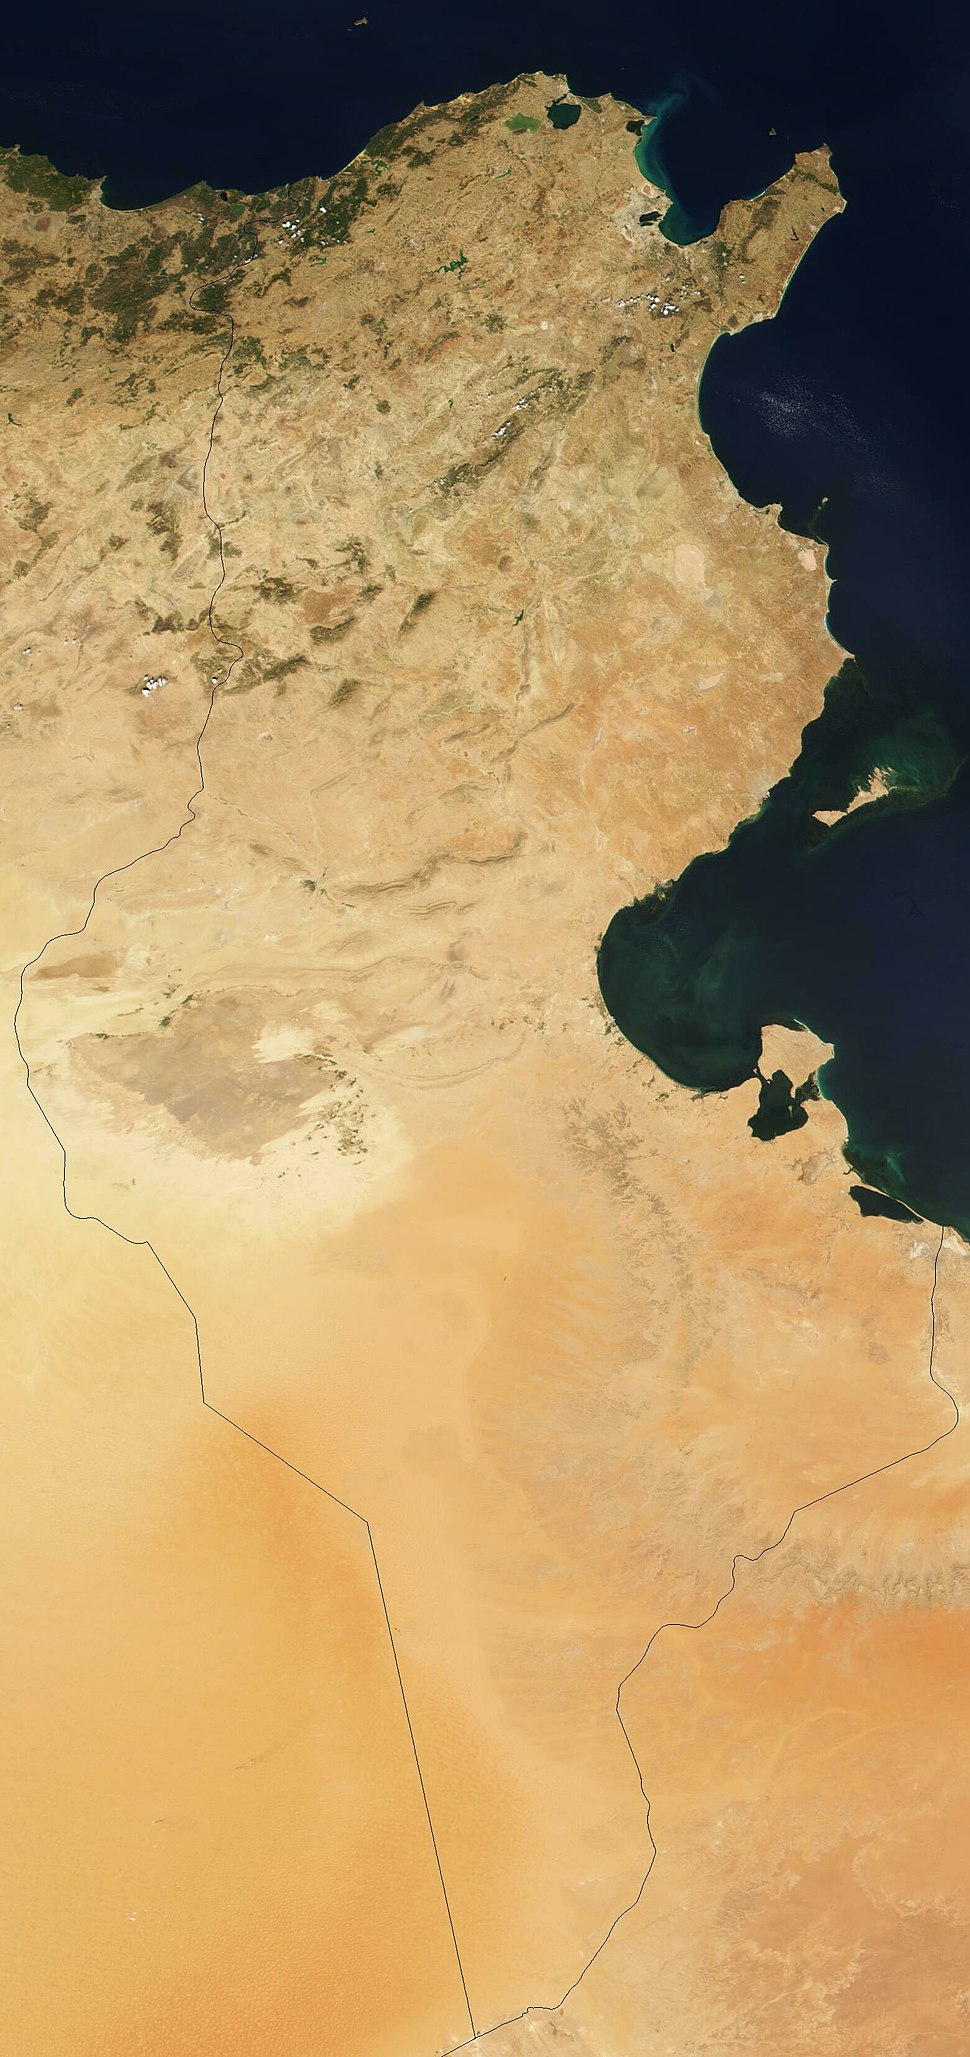 Satellite image of Tunisia in August 2001